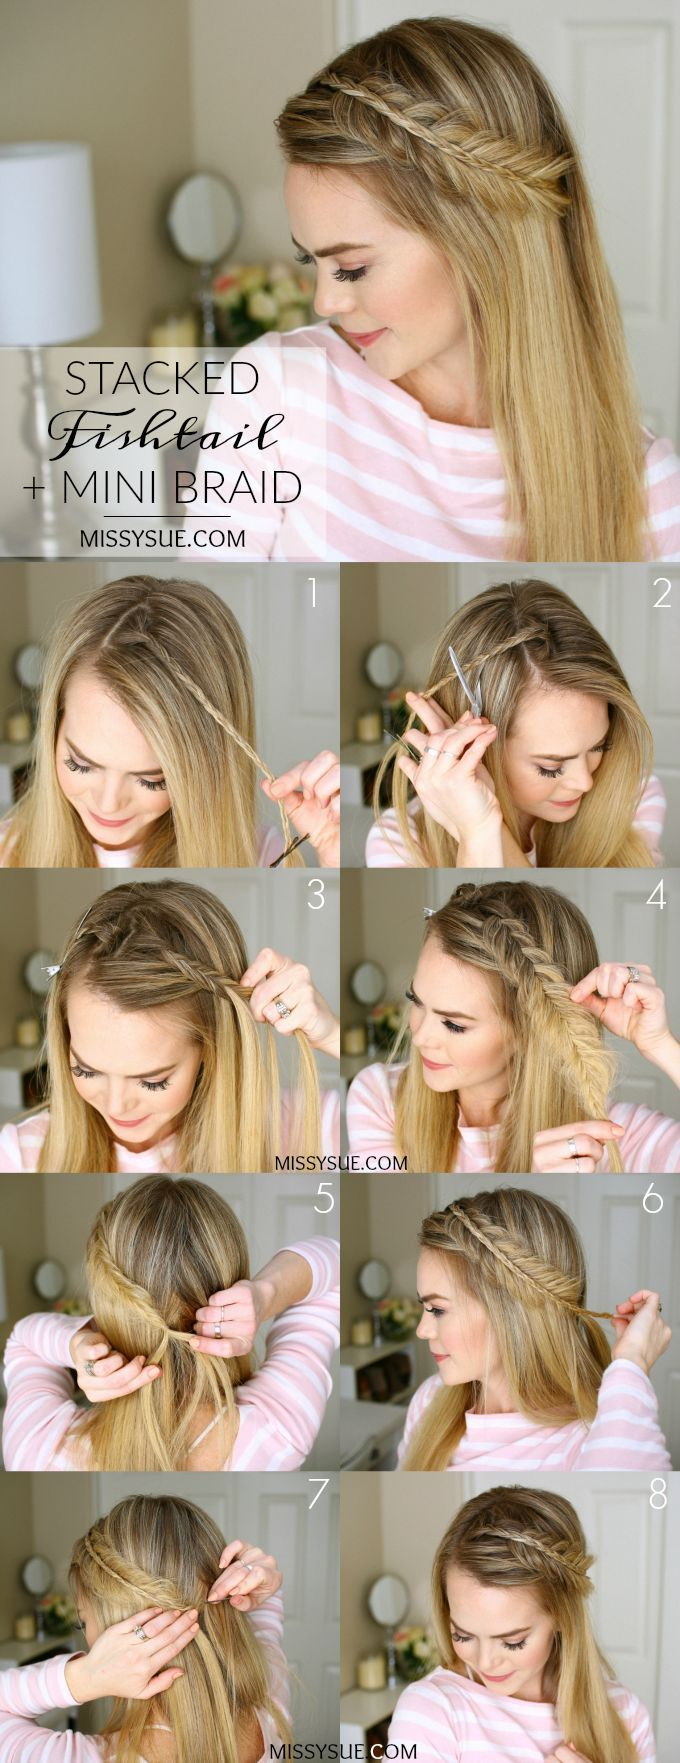 Trendy Long Hairstyles | Long Hair Cut Female | Quick Elegant Updo 20190514